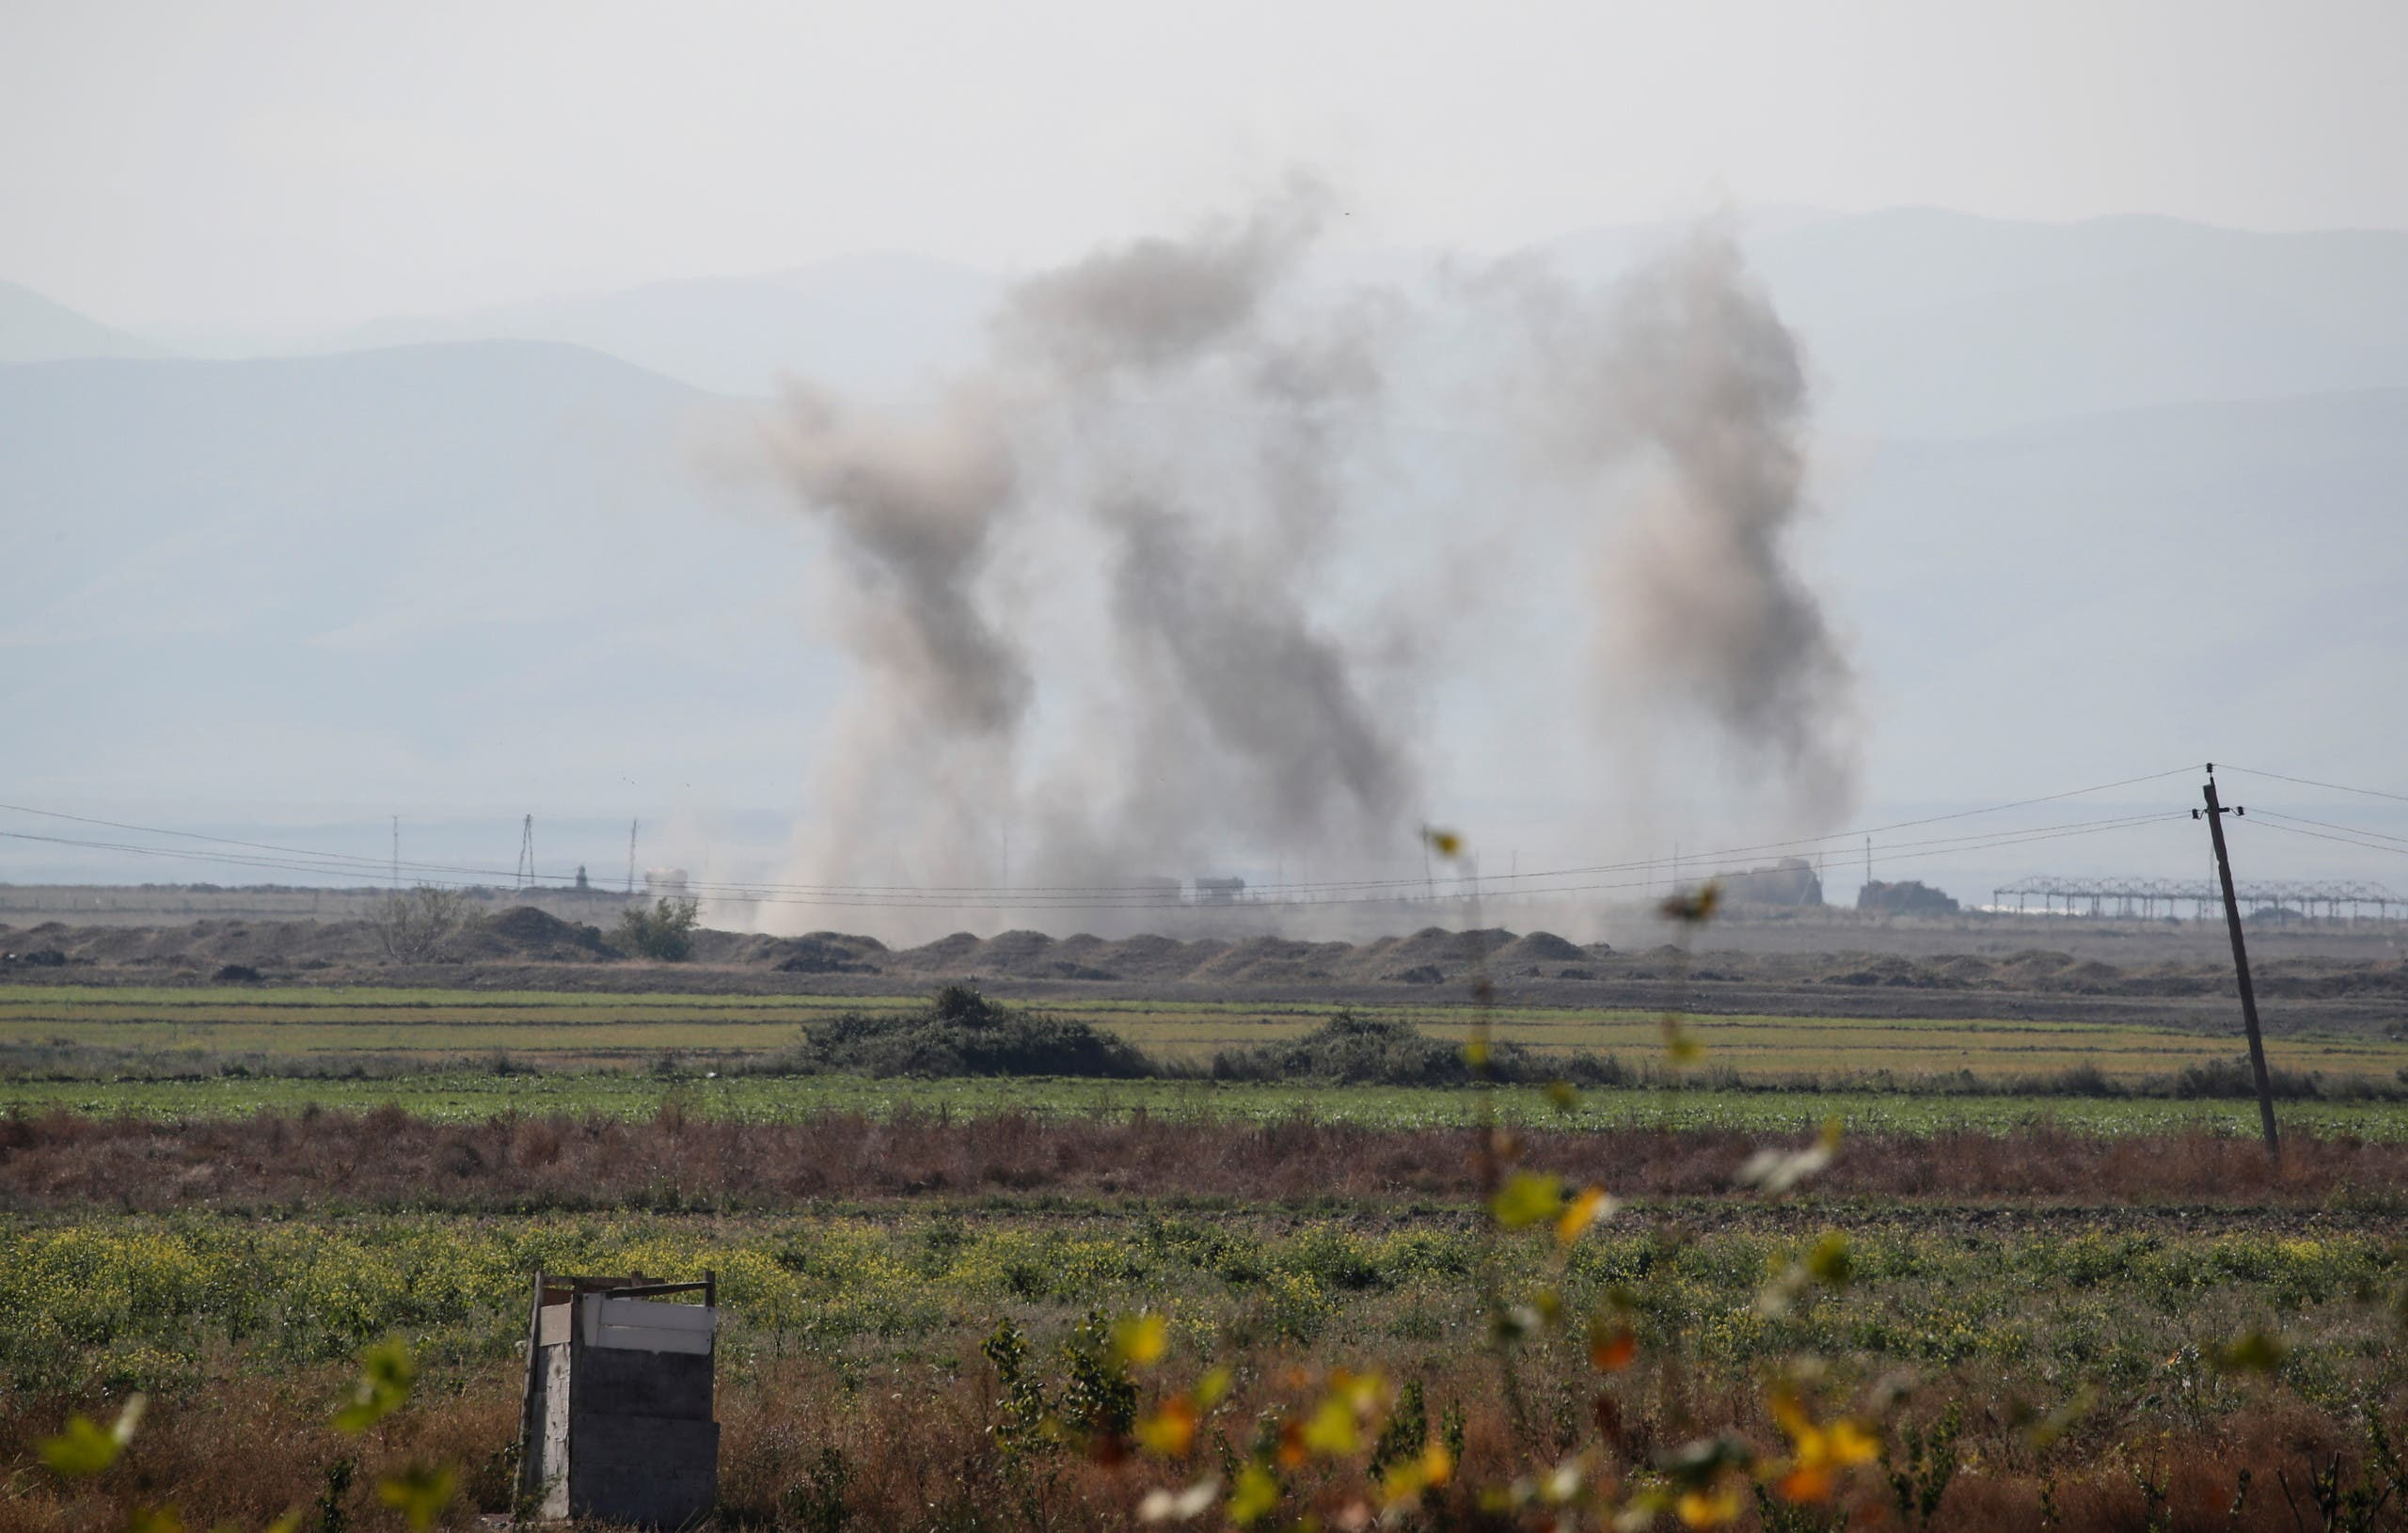 Smoke rises as targets are hit by shelling during the fighting over the region of Nagorno-Karabakh near the city of Terter, Azerbaijan on October 23, 2020. (Reuters)